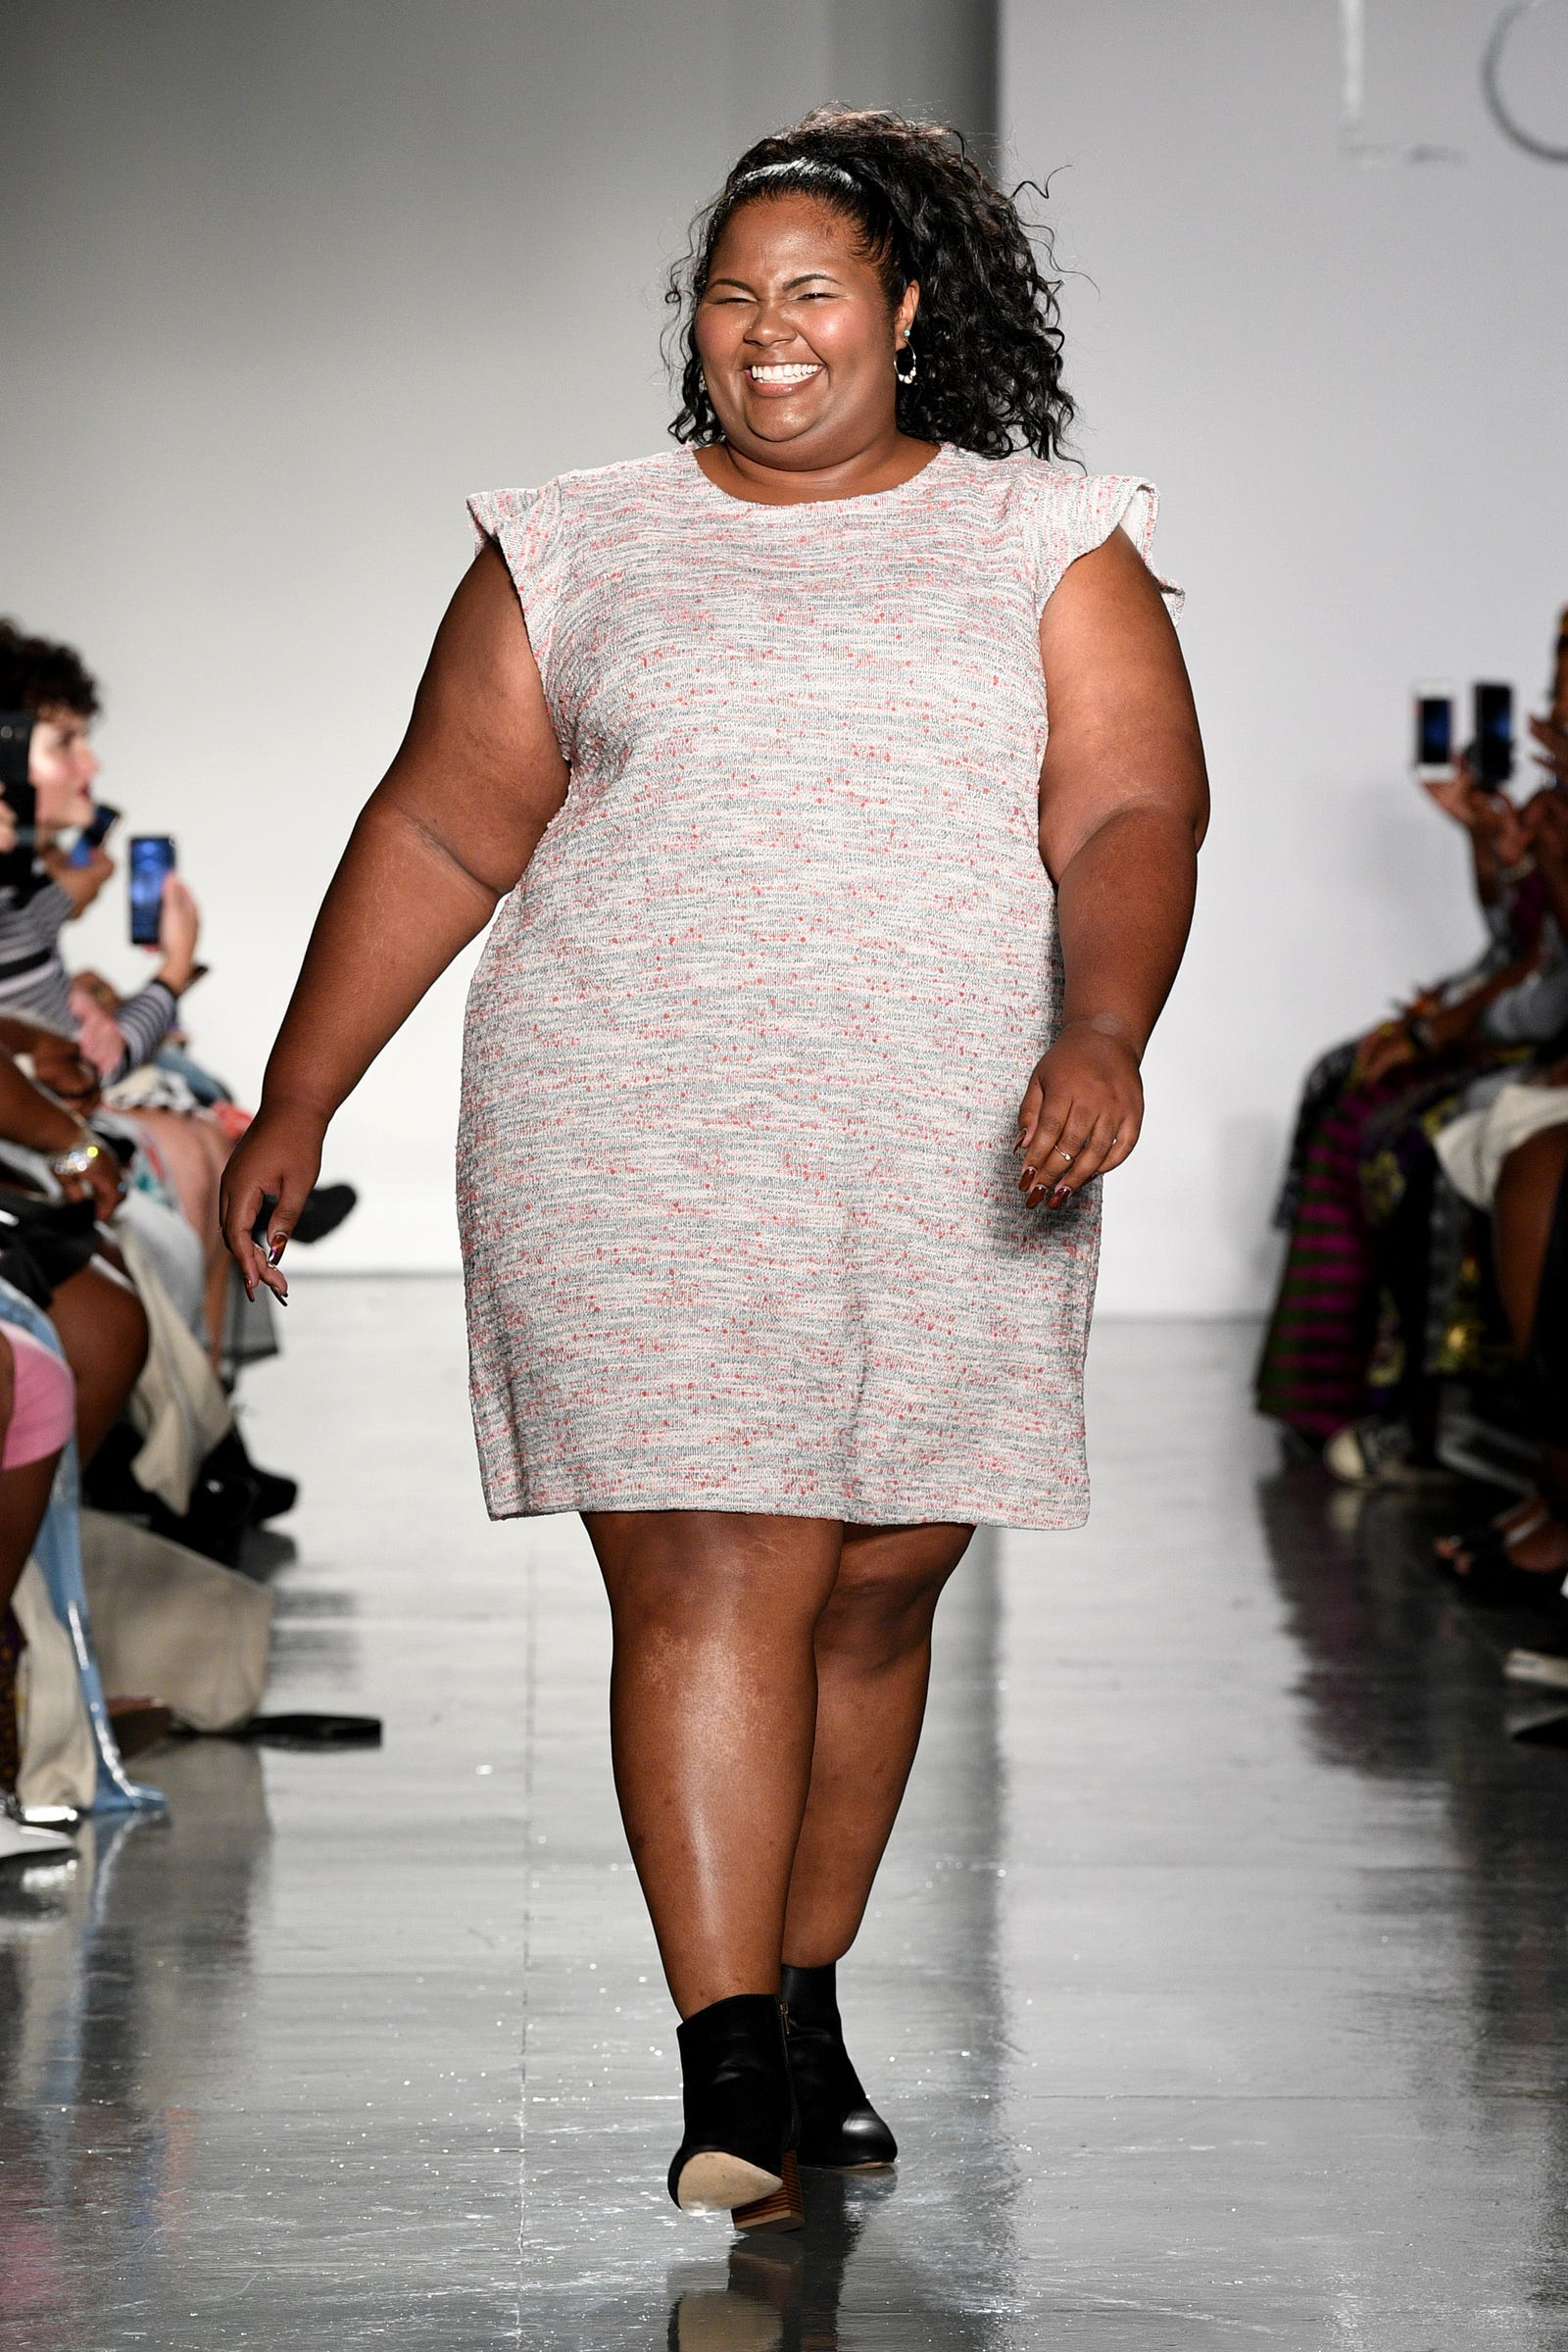 A model walks the runway at the Loft Fashion Show during theCURVYcon Powered By Dia&Co on September 7, 2018 in New York City.